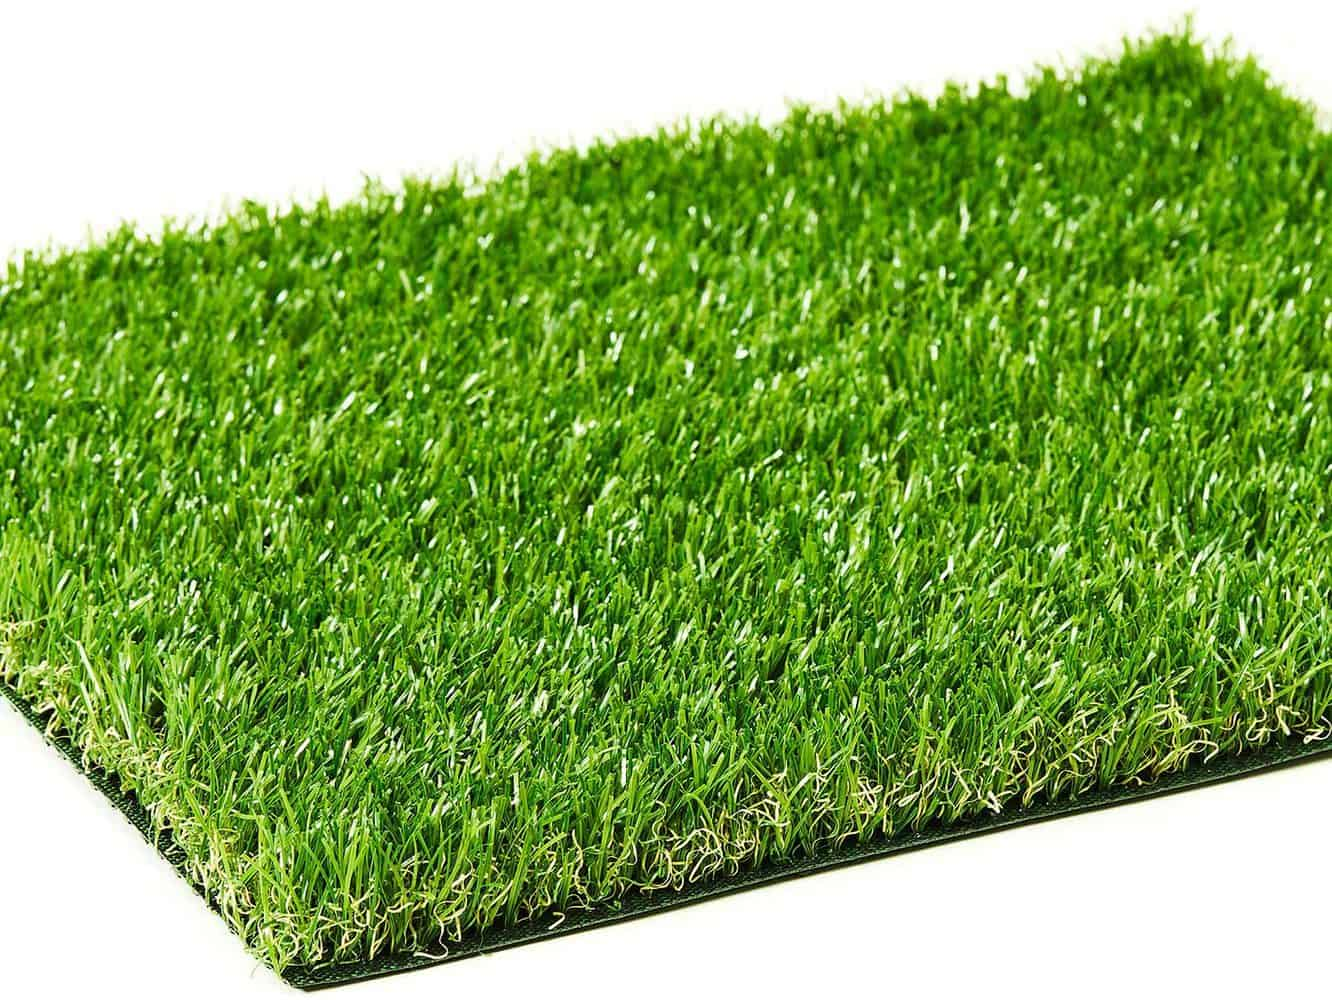 AYOHA 5' x 8' (40 Square ft) Artificial Grass